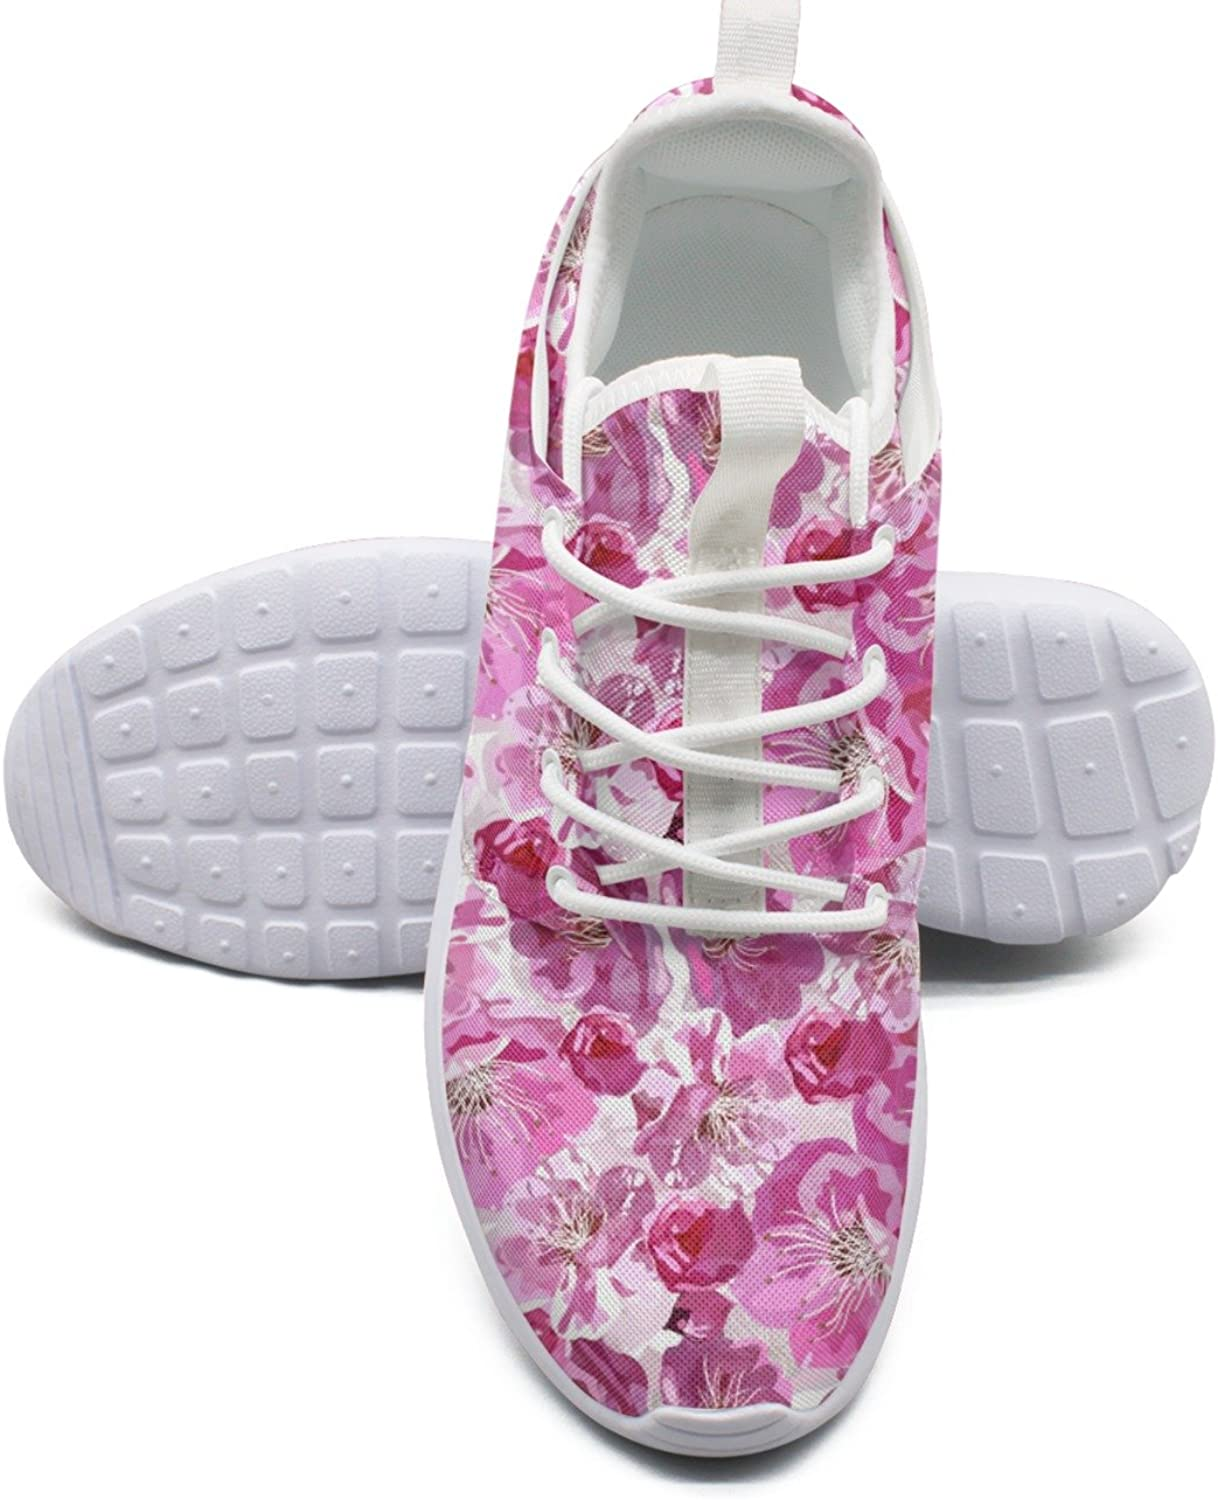 Cherry Blossom Flowers colorful Running shoes For Women size 10